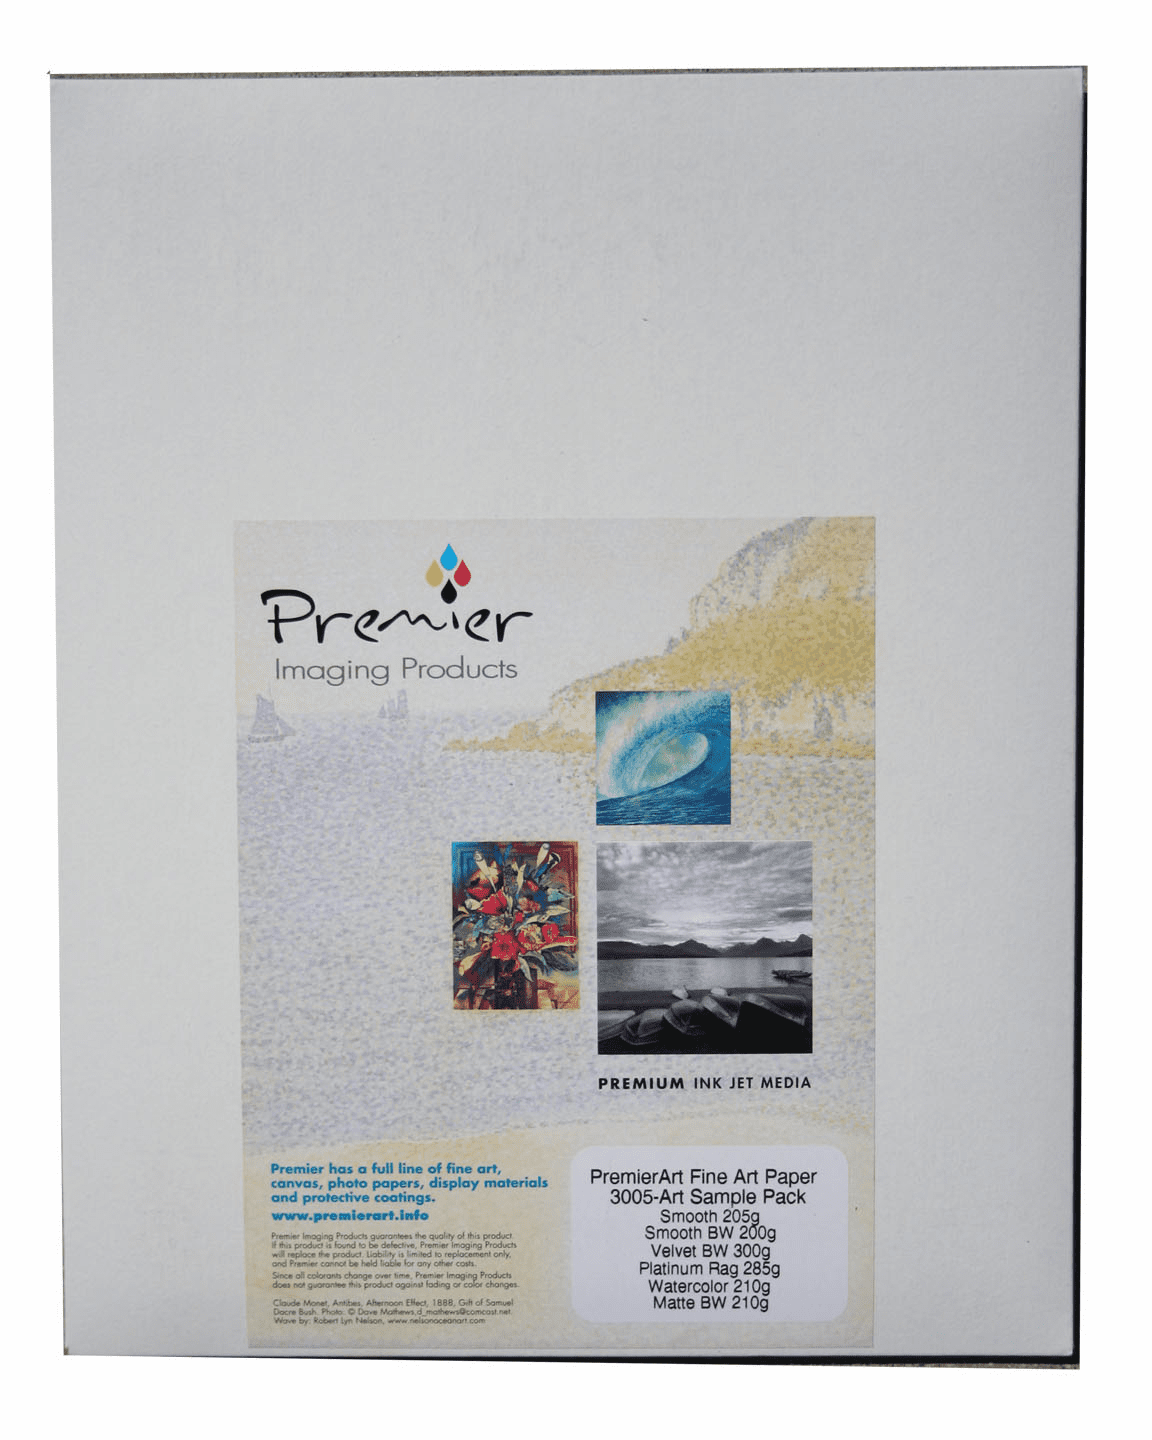 PremierArt Fine Art Paper 12 Sheet Sampler Pack